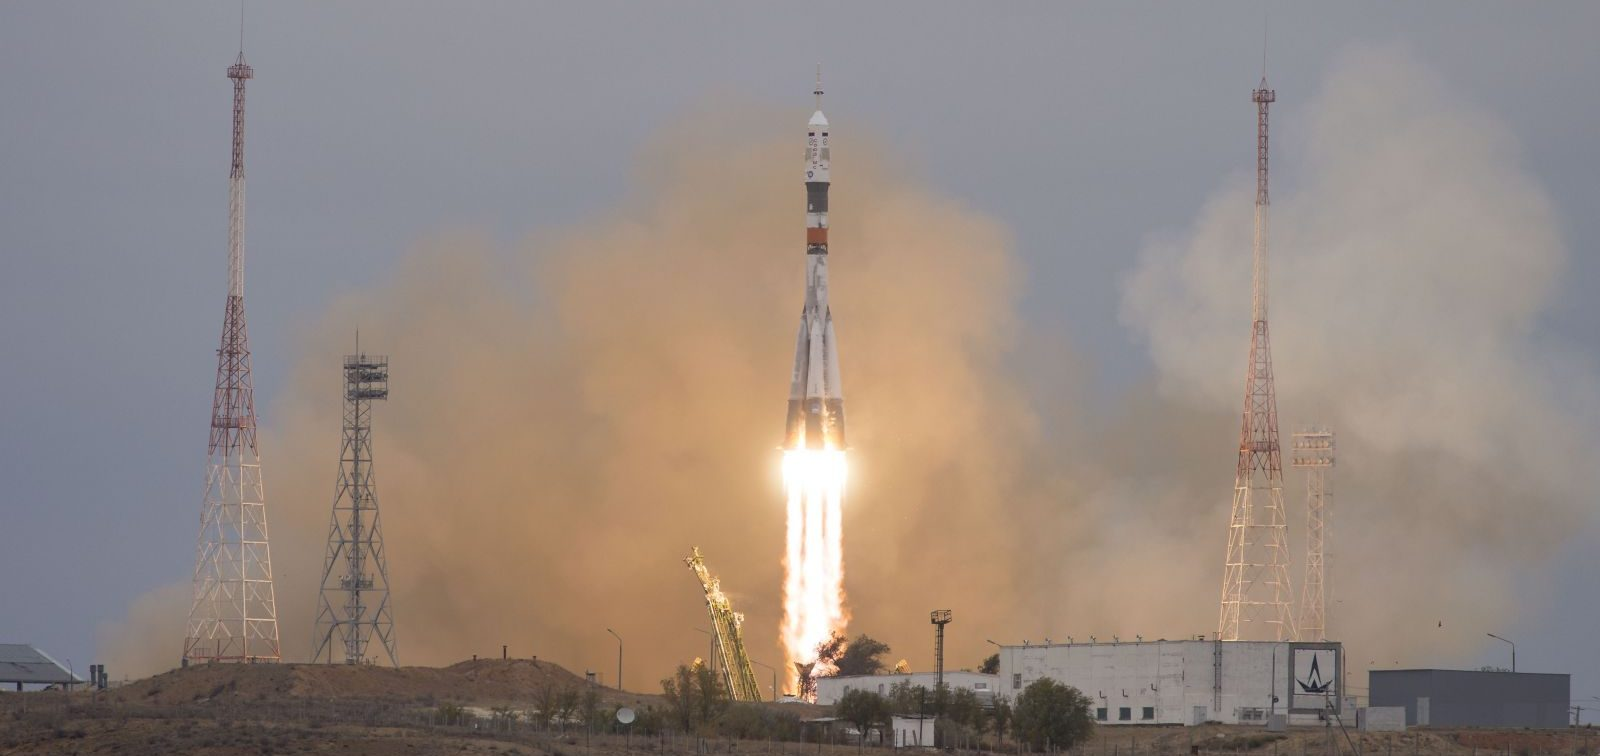 Soyuz MS-02 launch